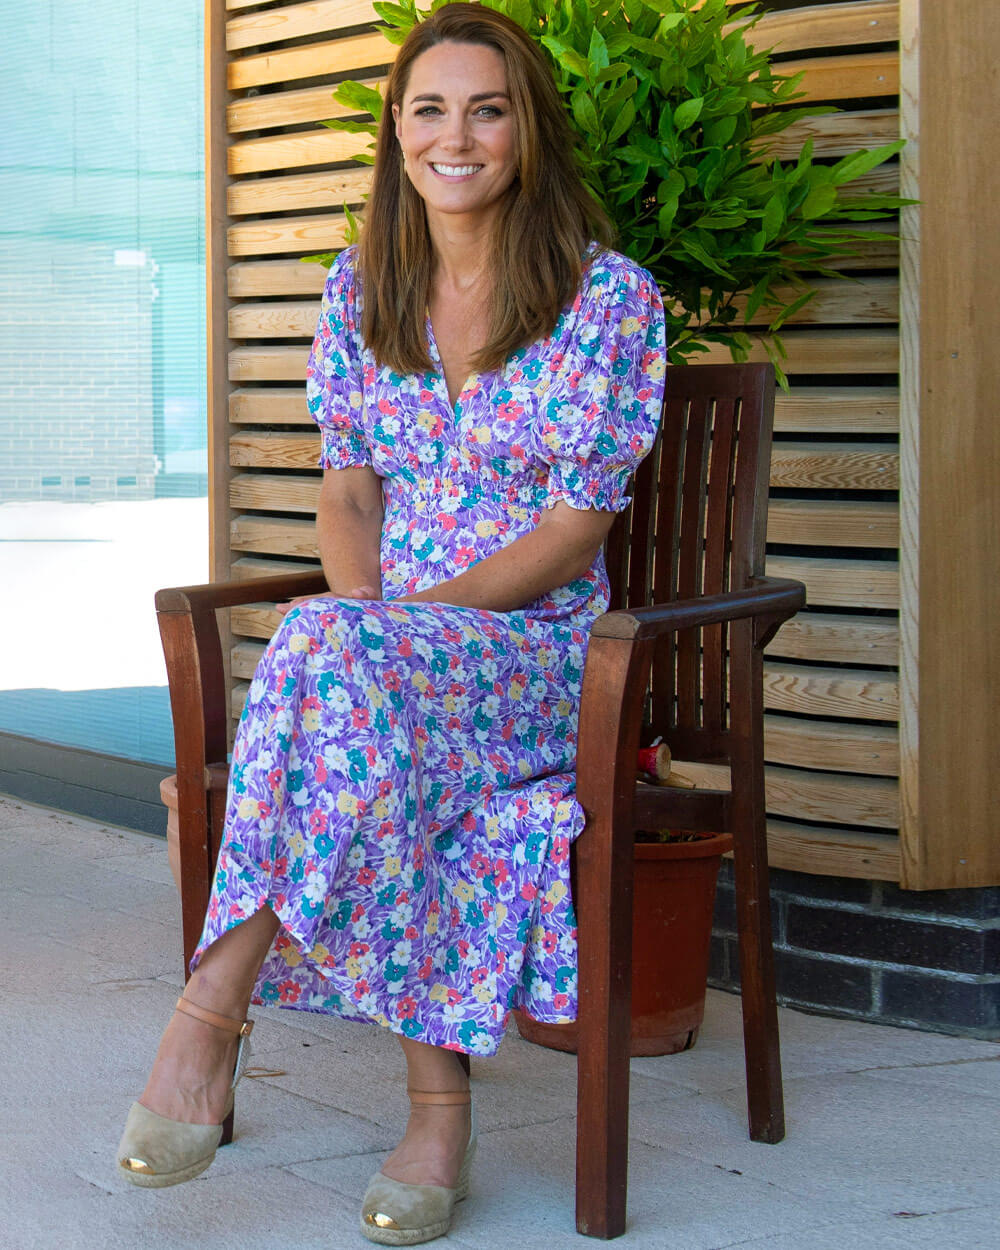 Kate Middleton wearing Faithfull the brand boho dress